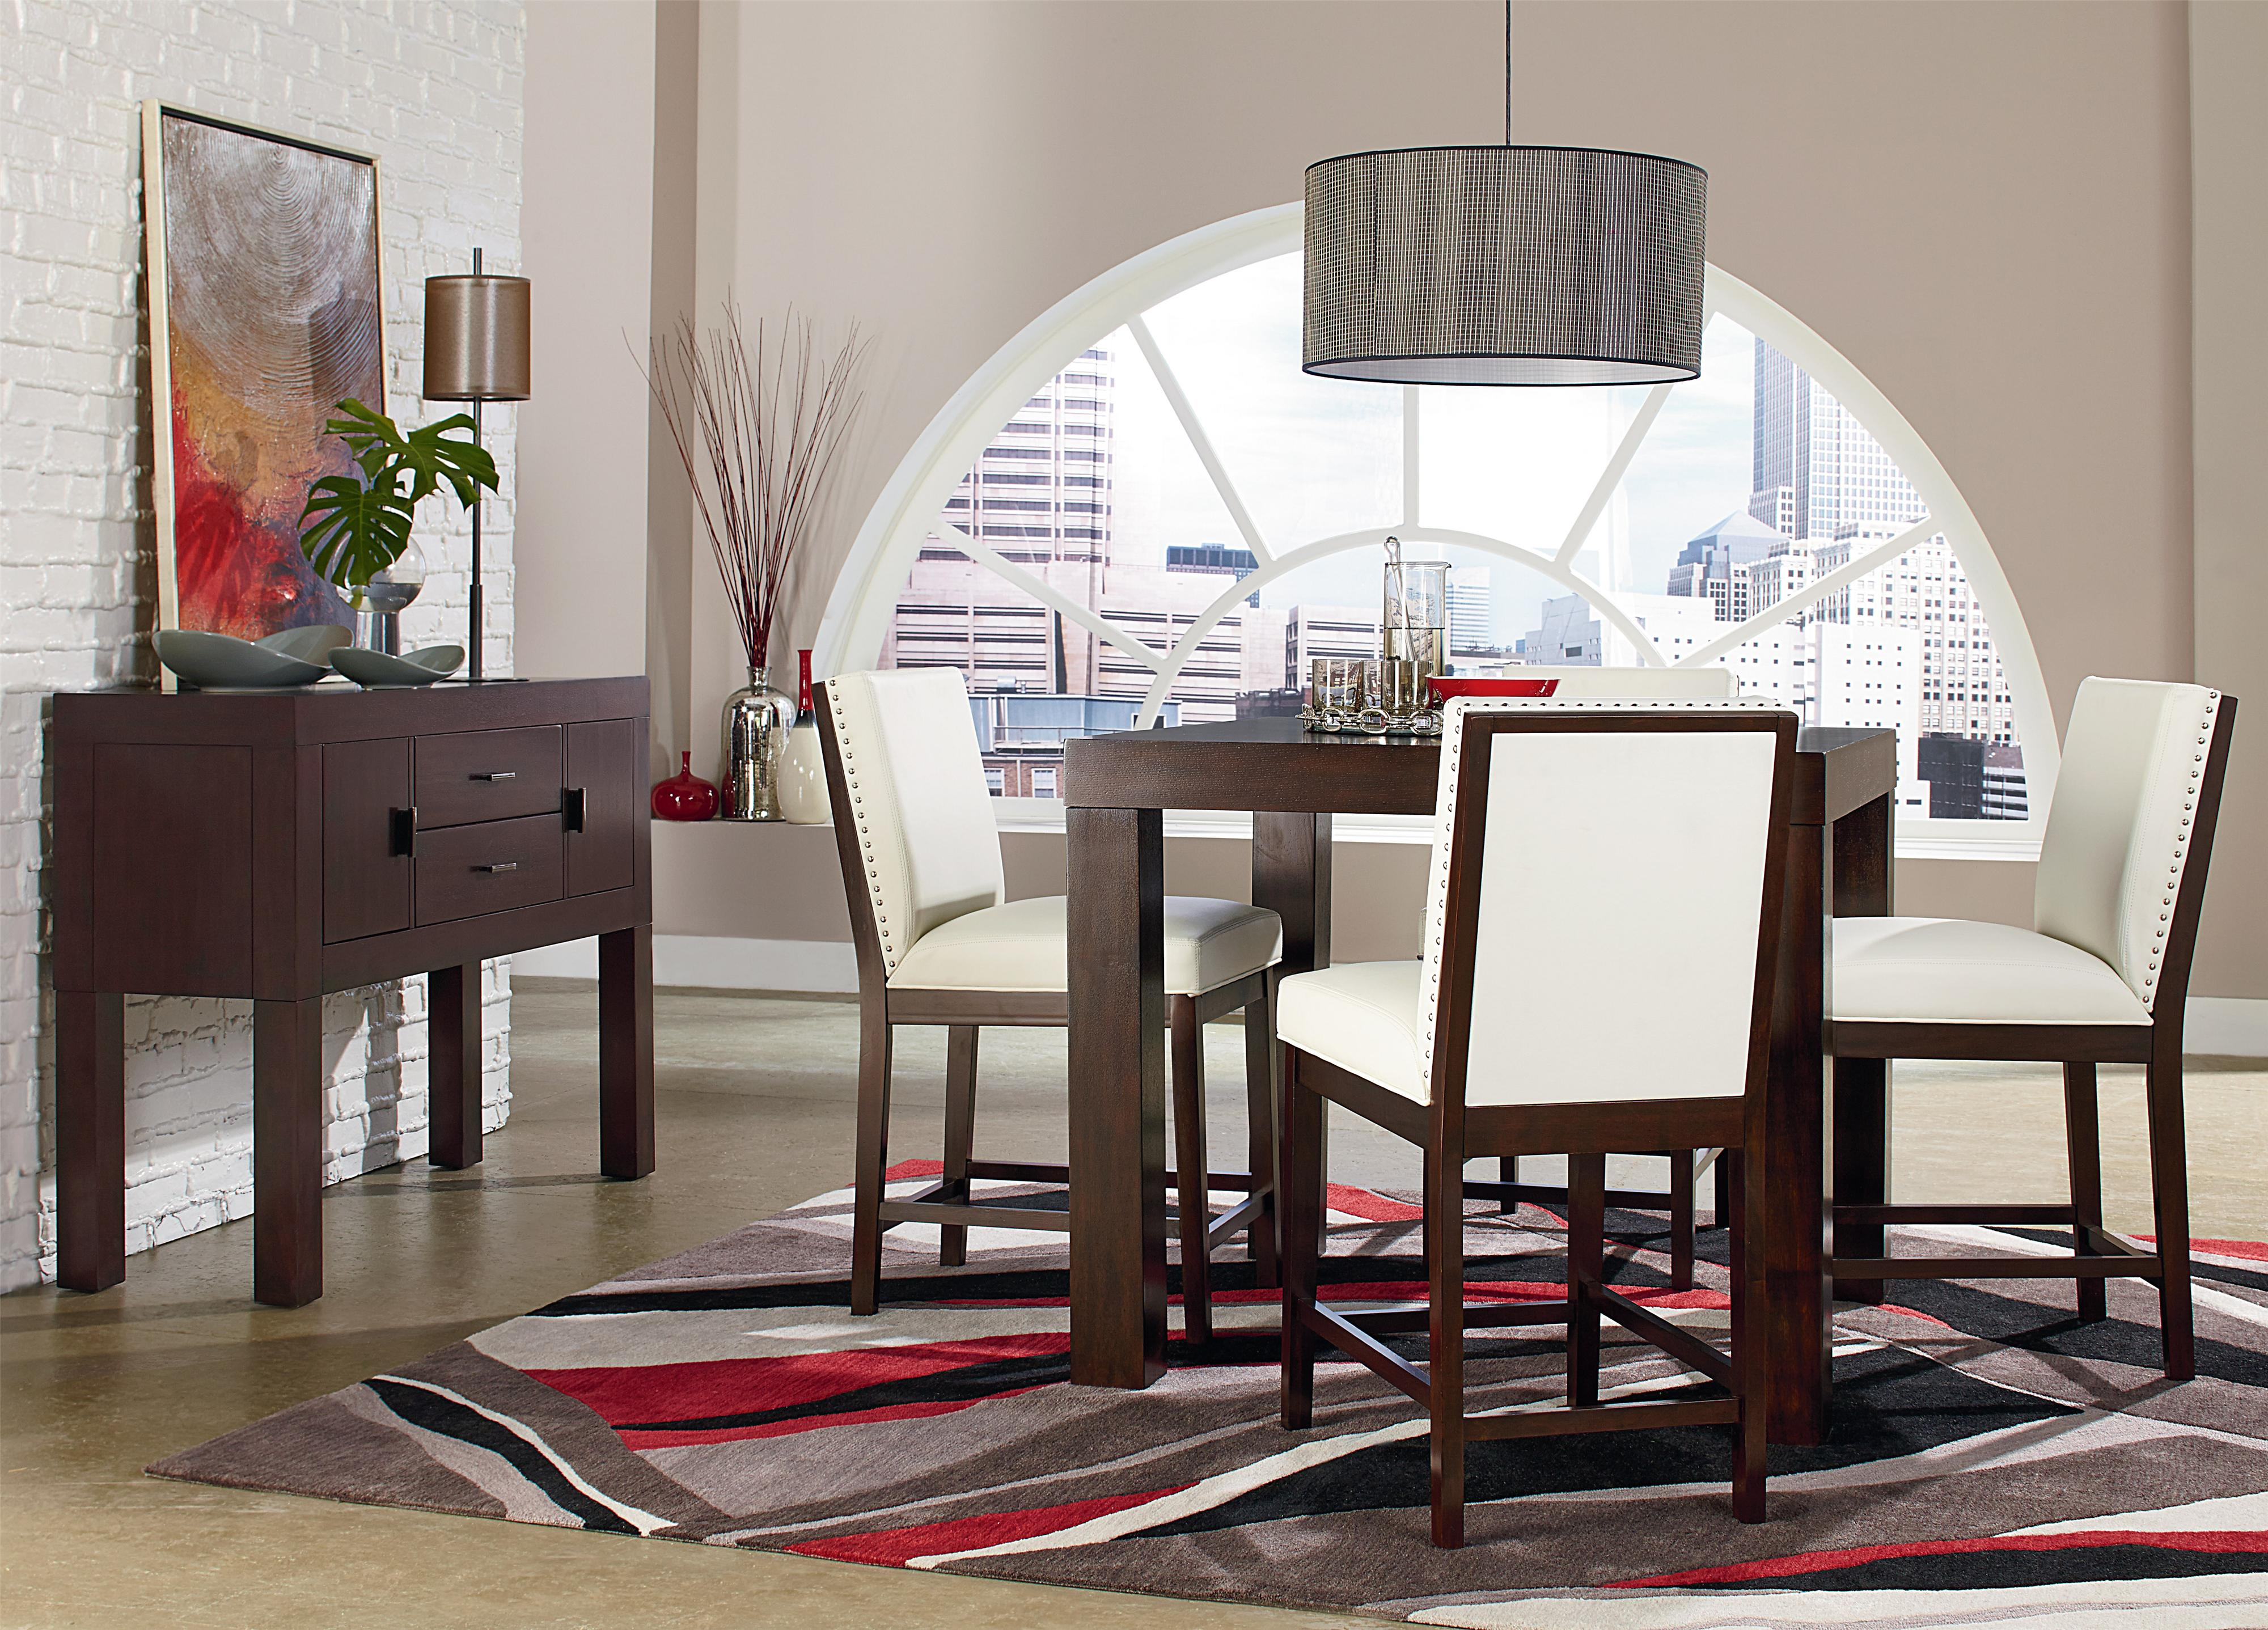 Standard Furniture Couture Elegance Dining Room Group - Item Number: 10560 C Dining Room Group 5